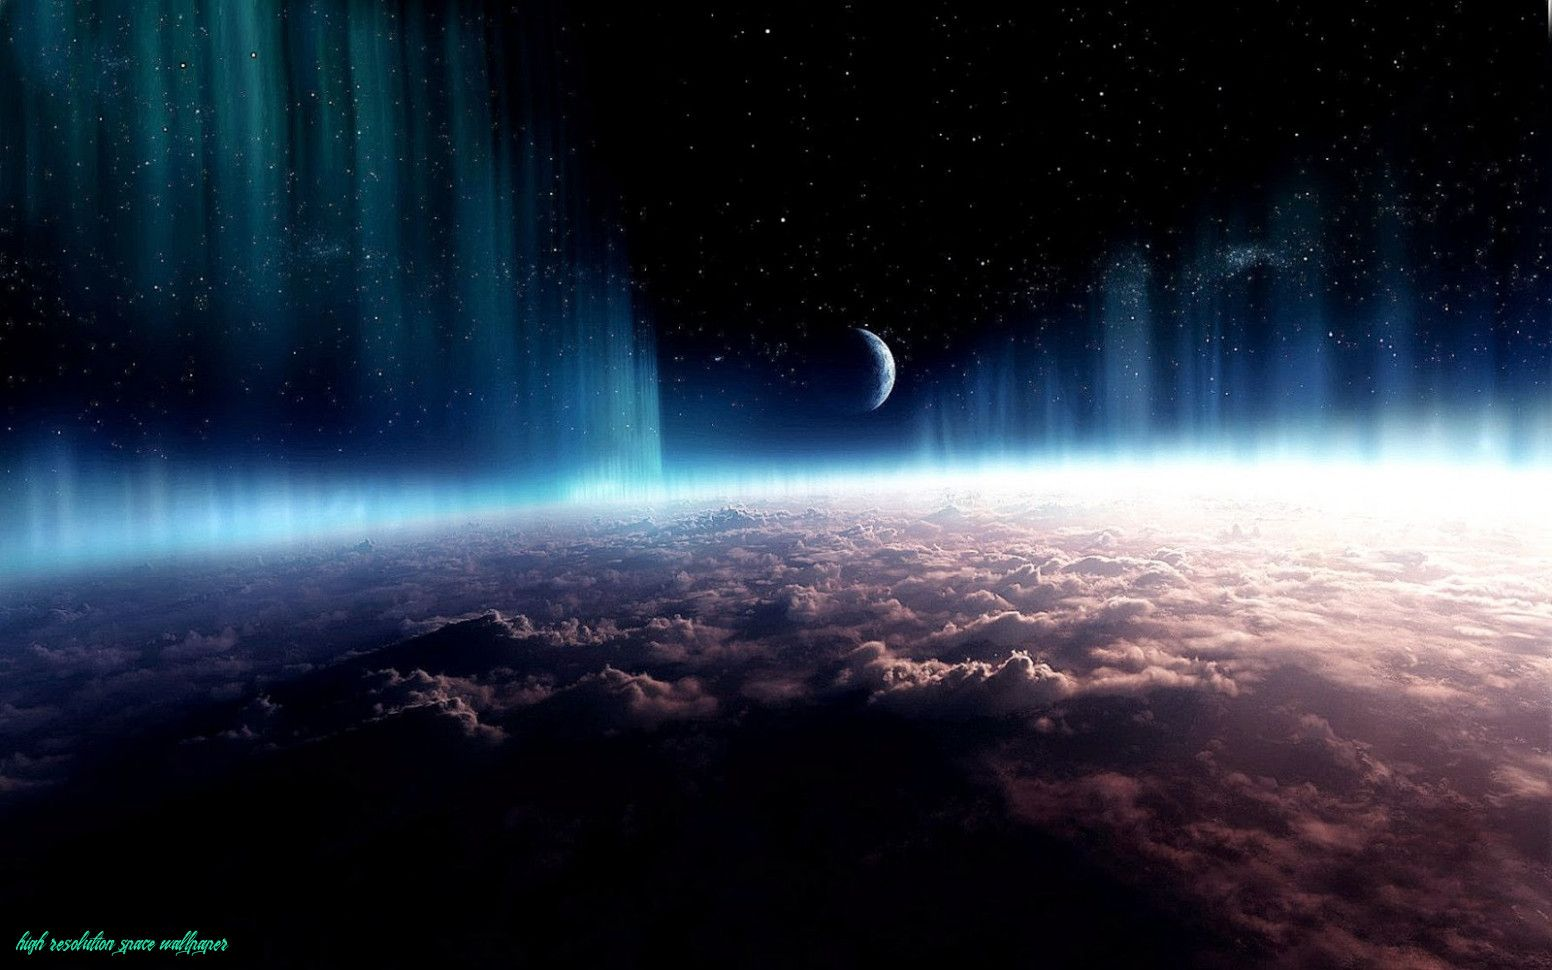 11 Features Of High Resolution Space Wallpaper That Make Everyone Love It High Resolution Space Wallpaper Https In 2020 Wallpaper Space Wallpaper Planets Wallpaper